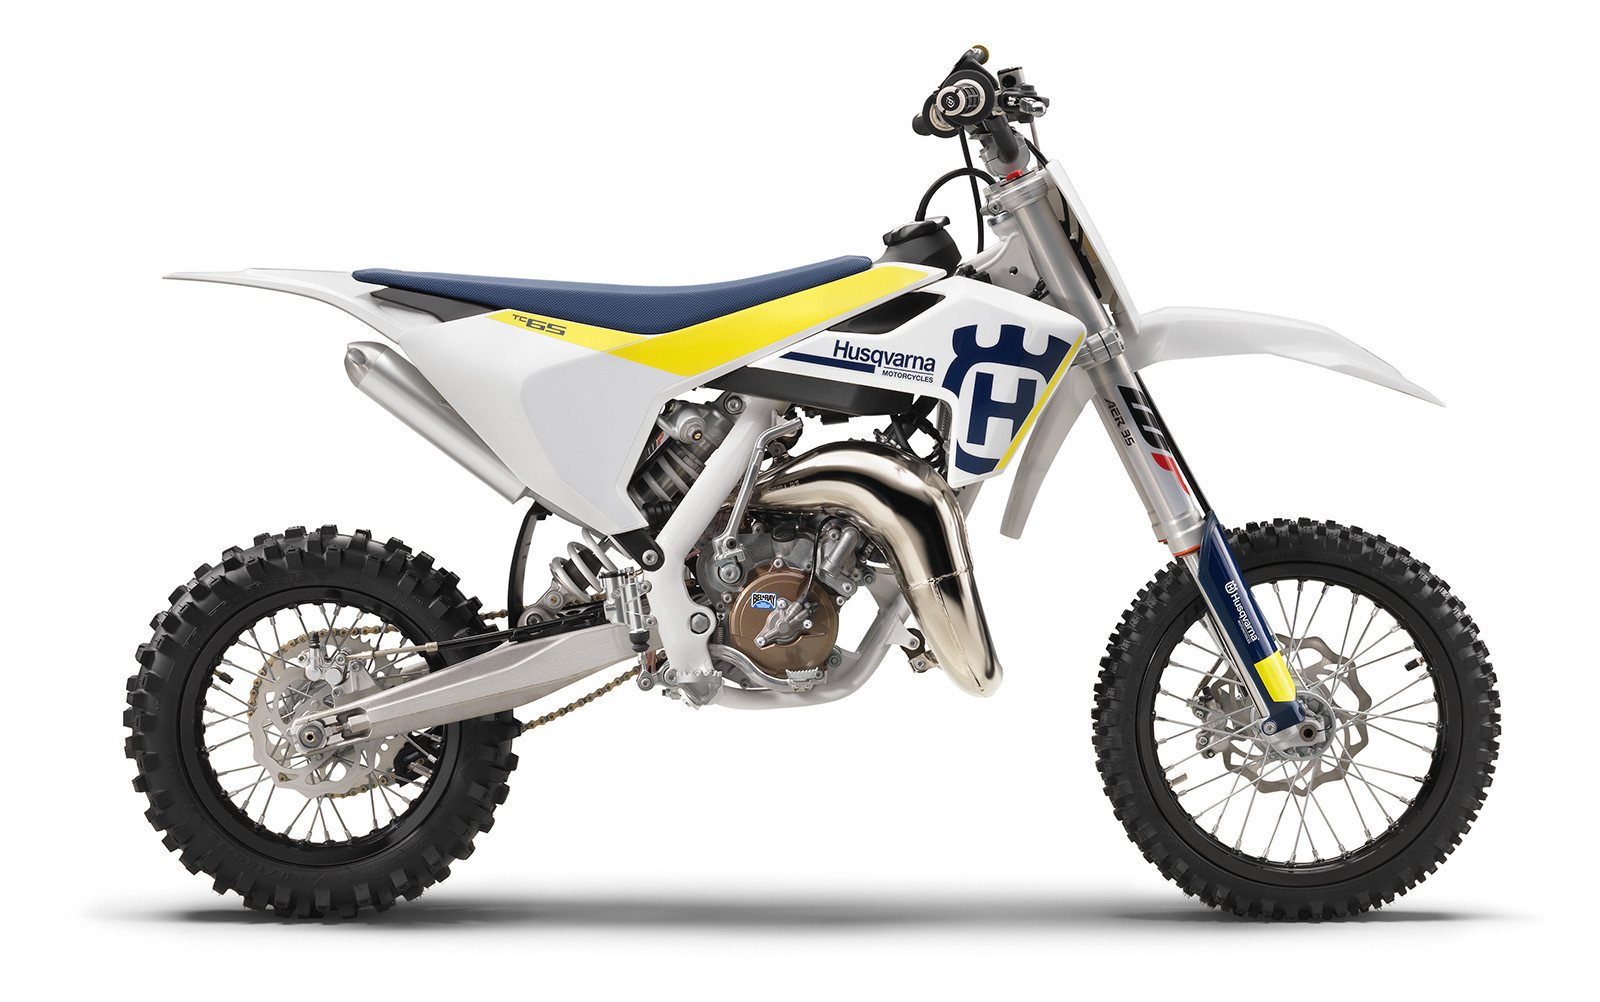 2017 Husqvarna TC 65 - First Look: 2017 Husqvarna TC 50 & TC 65 Minicycles - Motocross Pictures - Vital MX